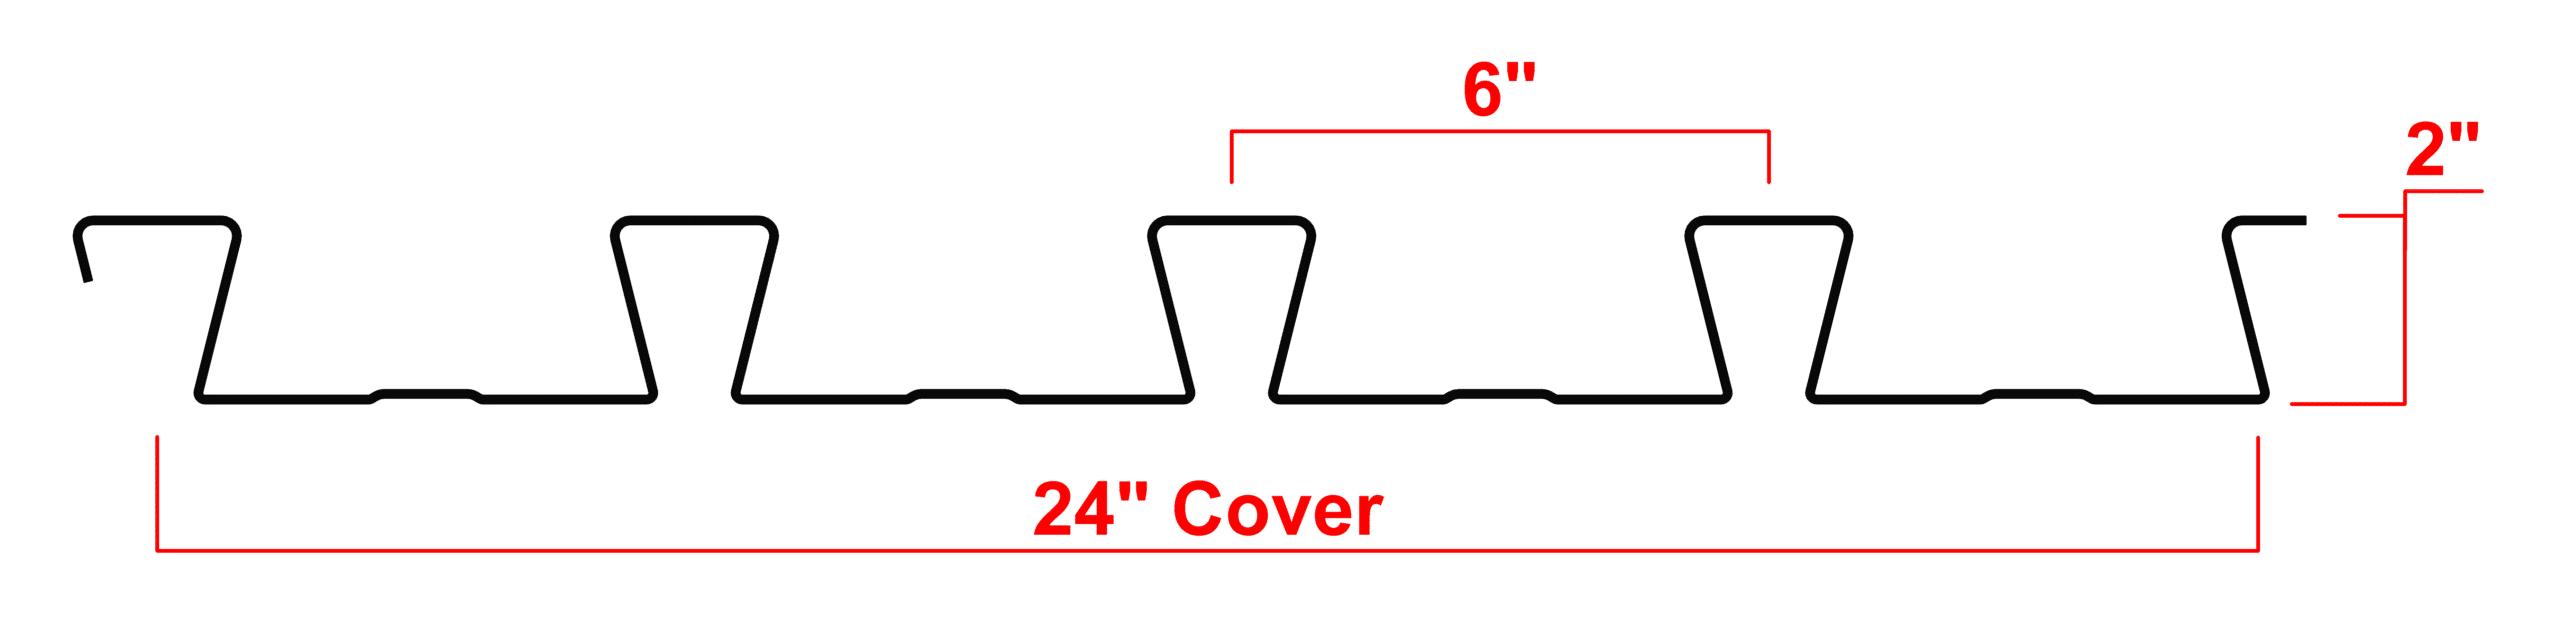 2.0 Dovetail Deck Profile